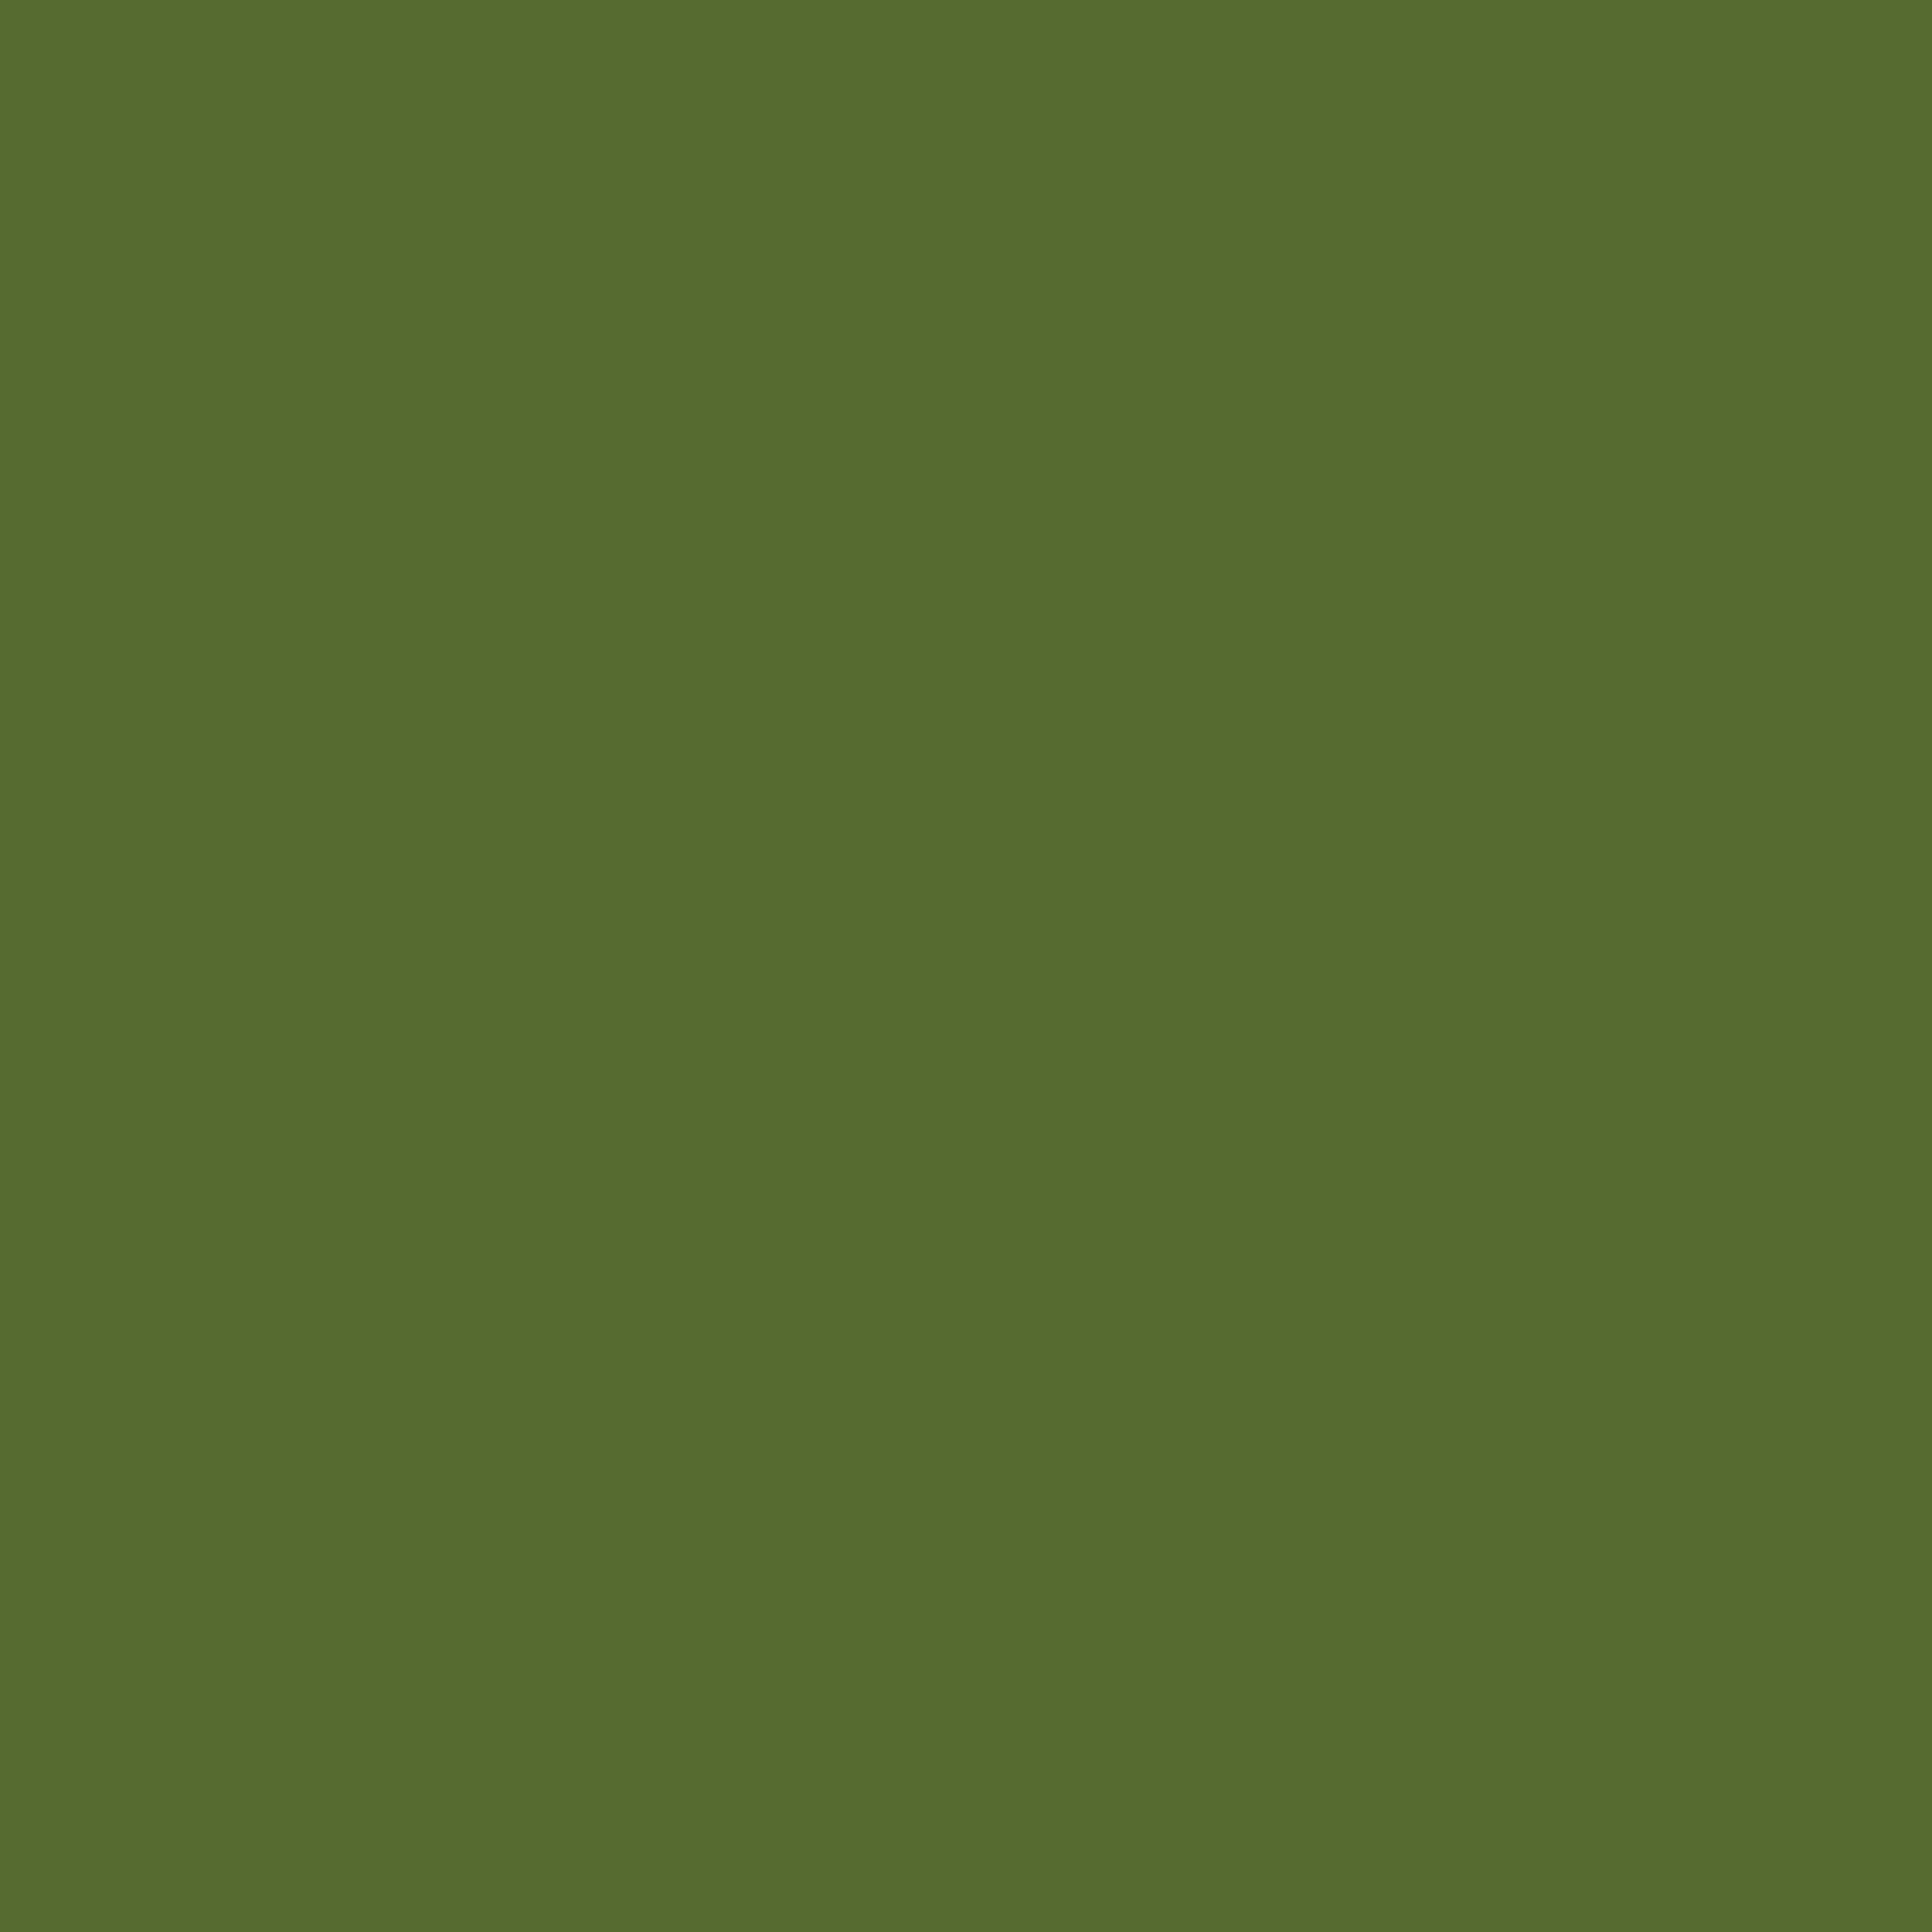 2732x2732 Dark Olive Green Solid Color Background